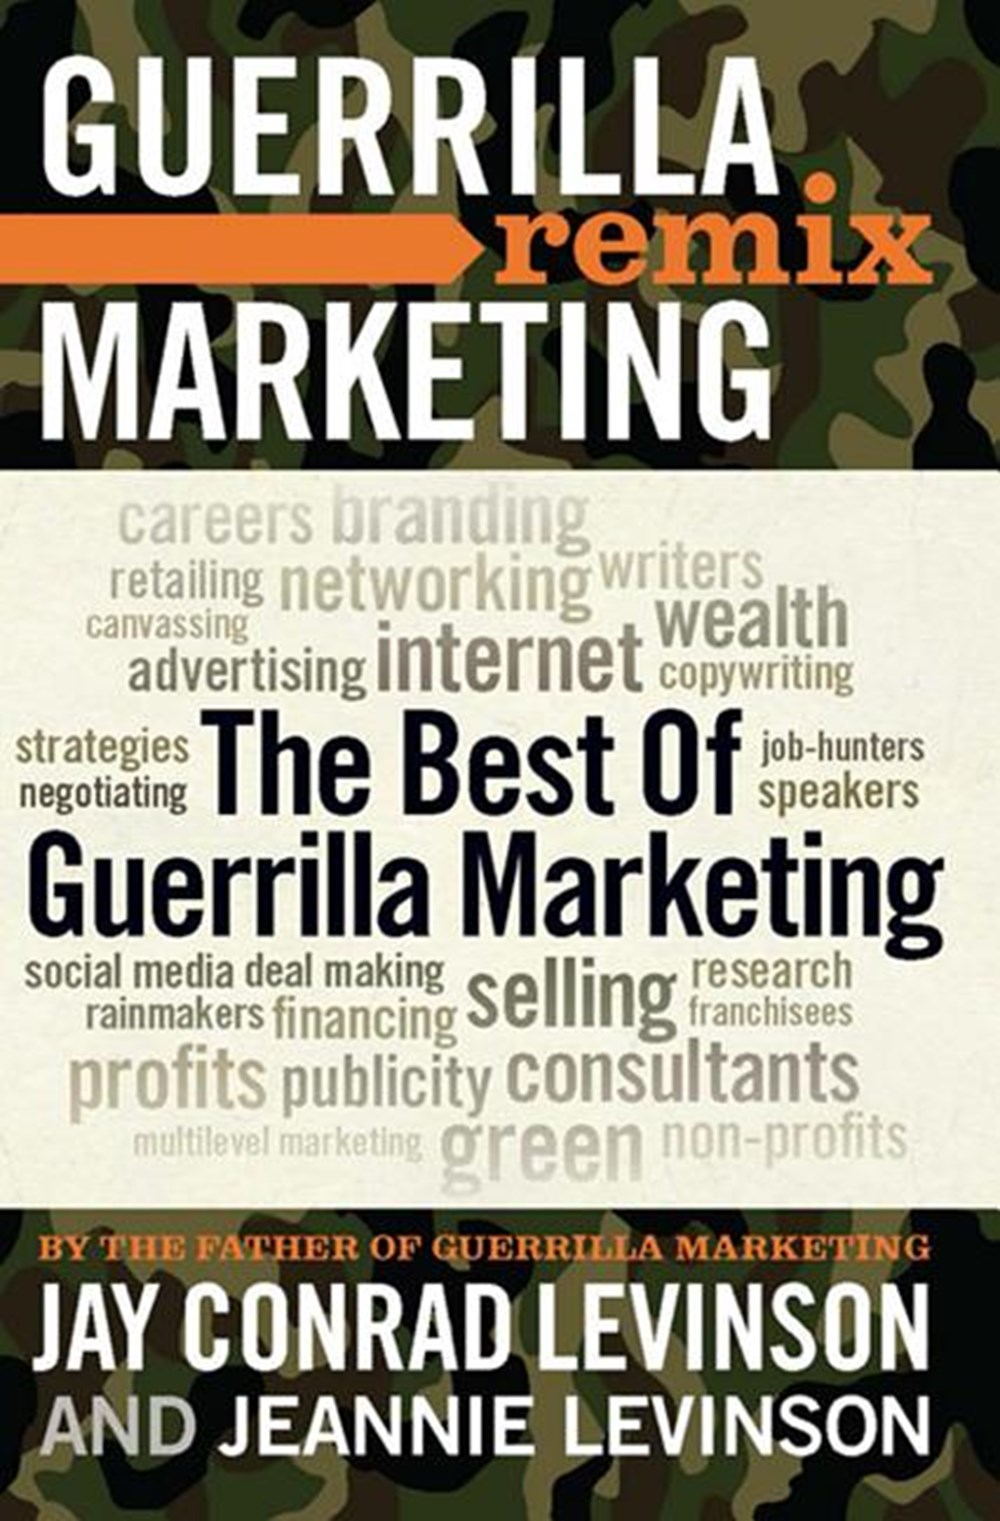 Best of Guerrilla Marketing: Guerrilla Marketing Remix